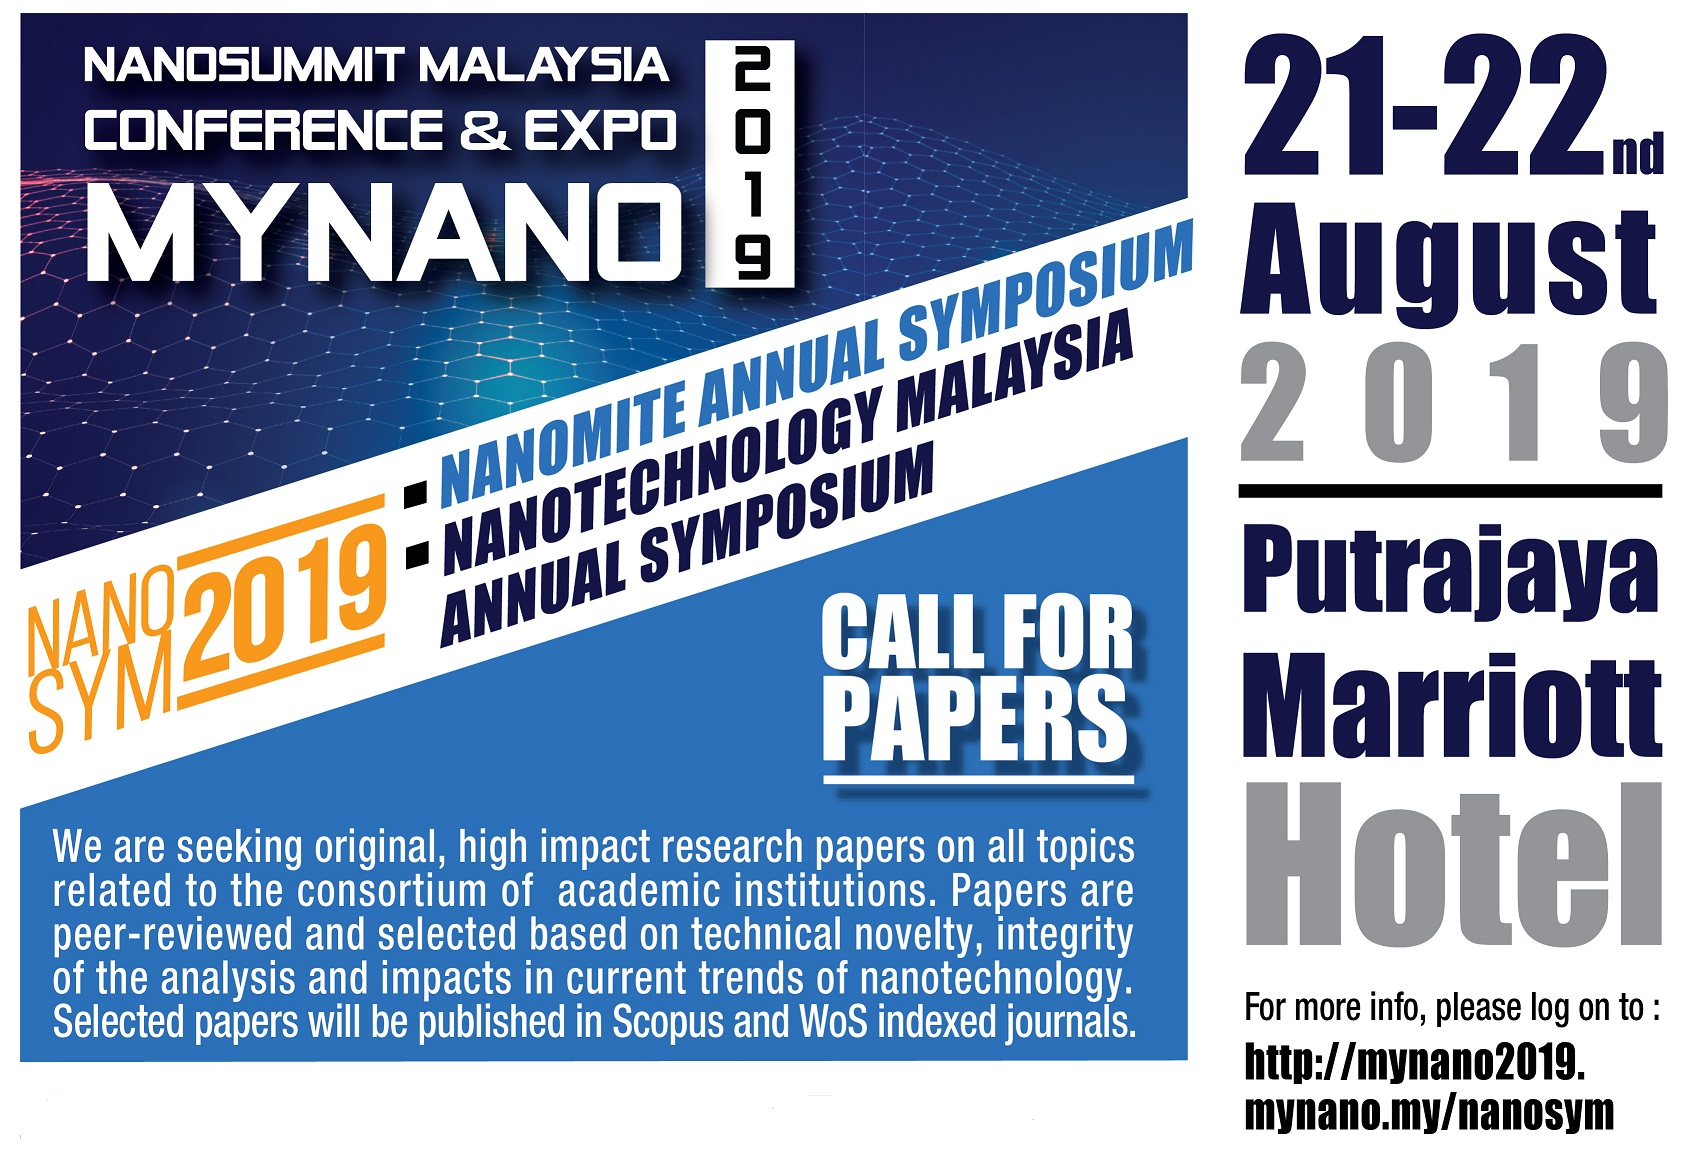 MYNANO2019 – The NanoMITe Annual Symposium & Nanotechnology